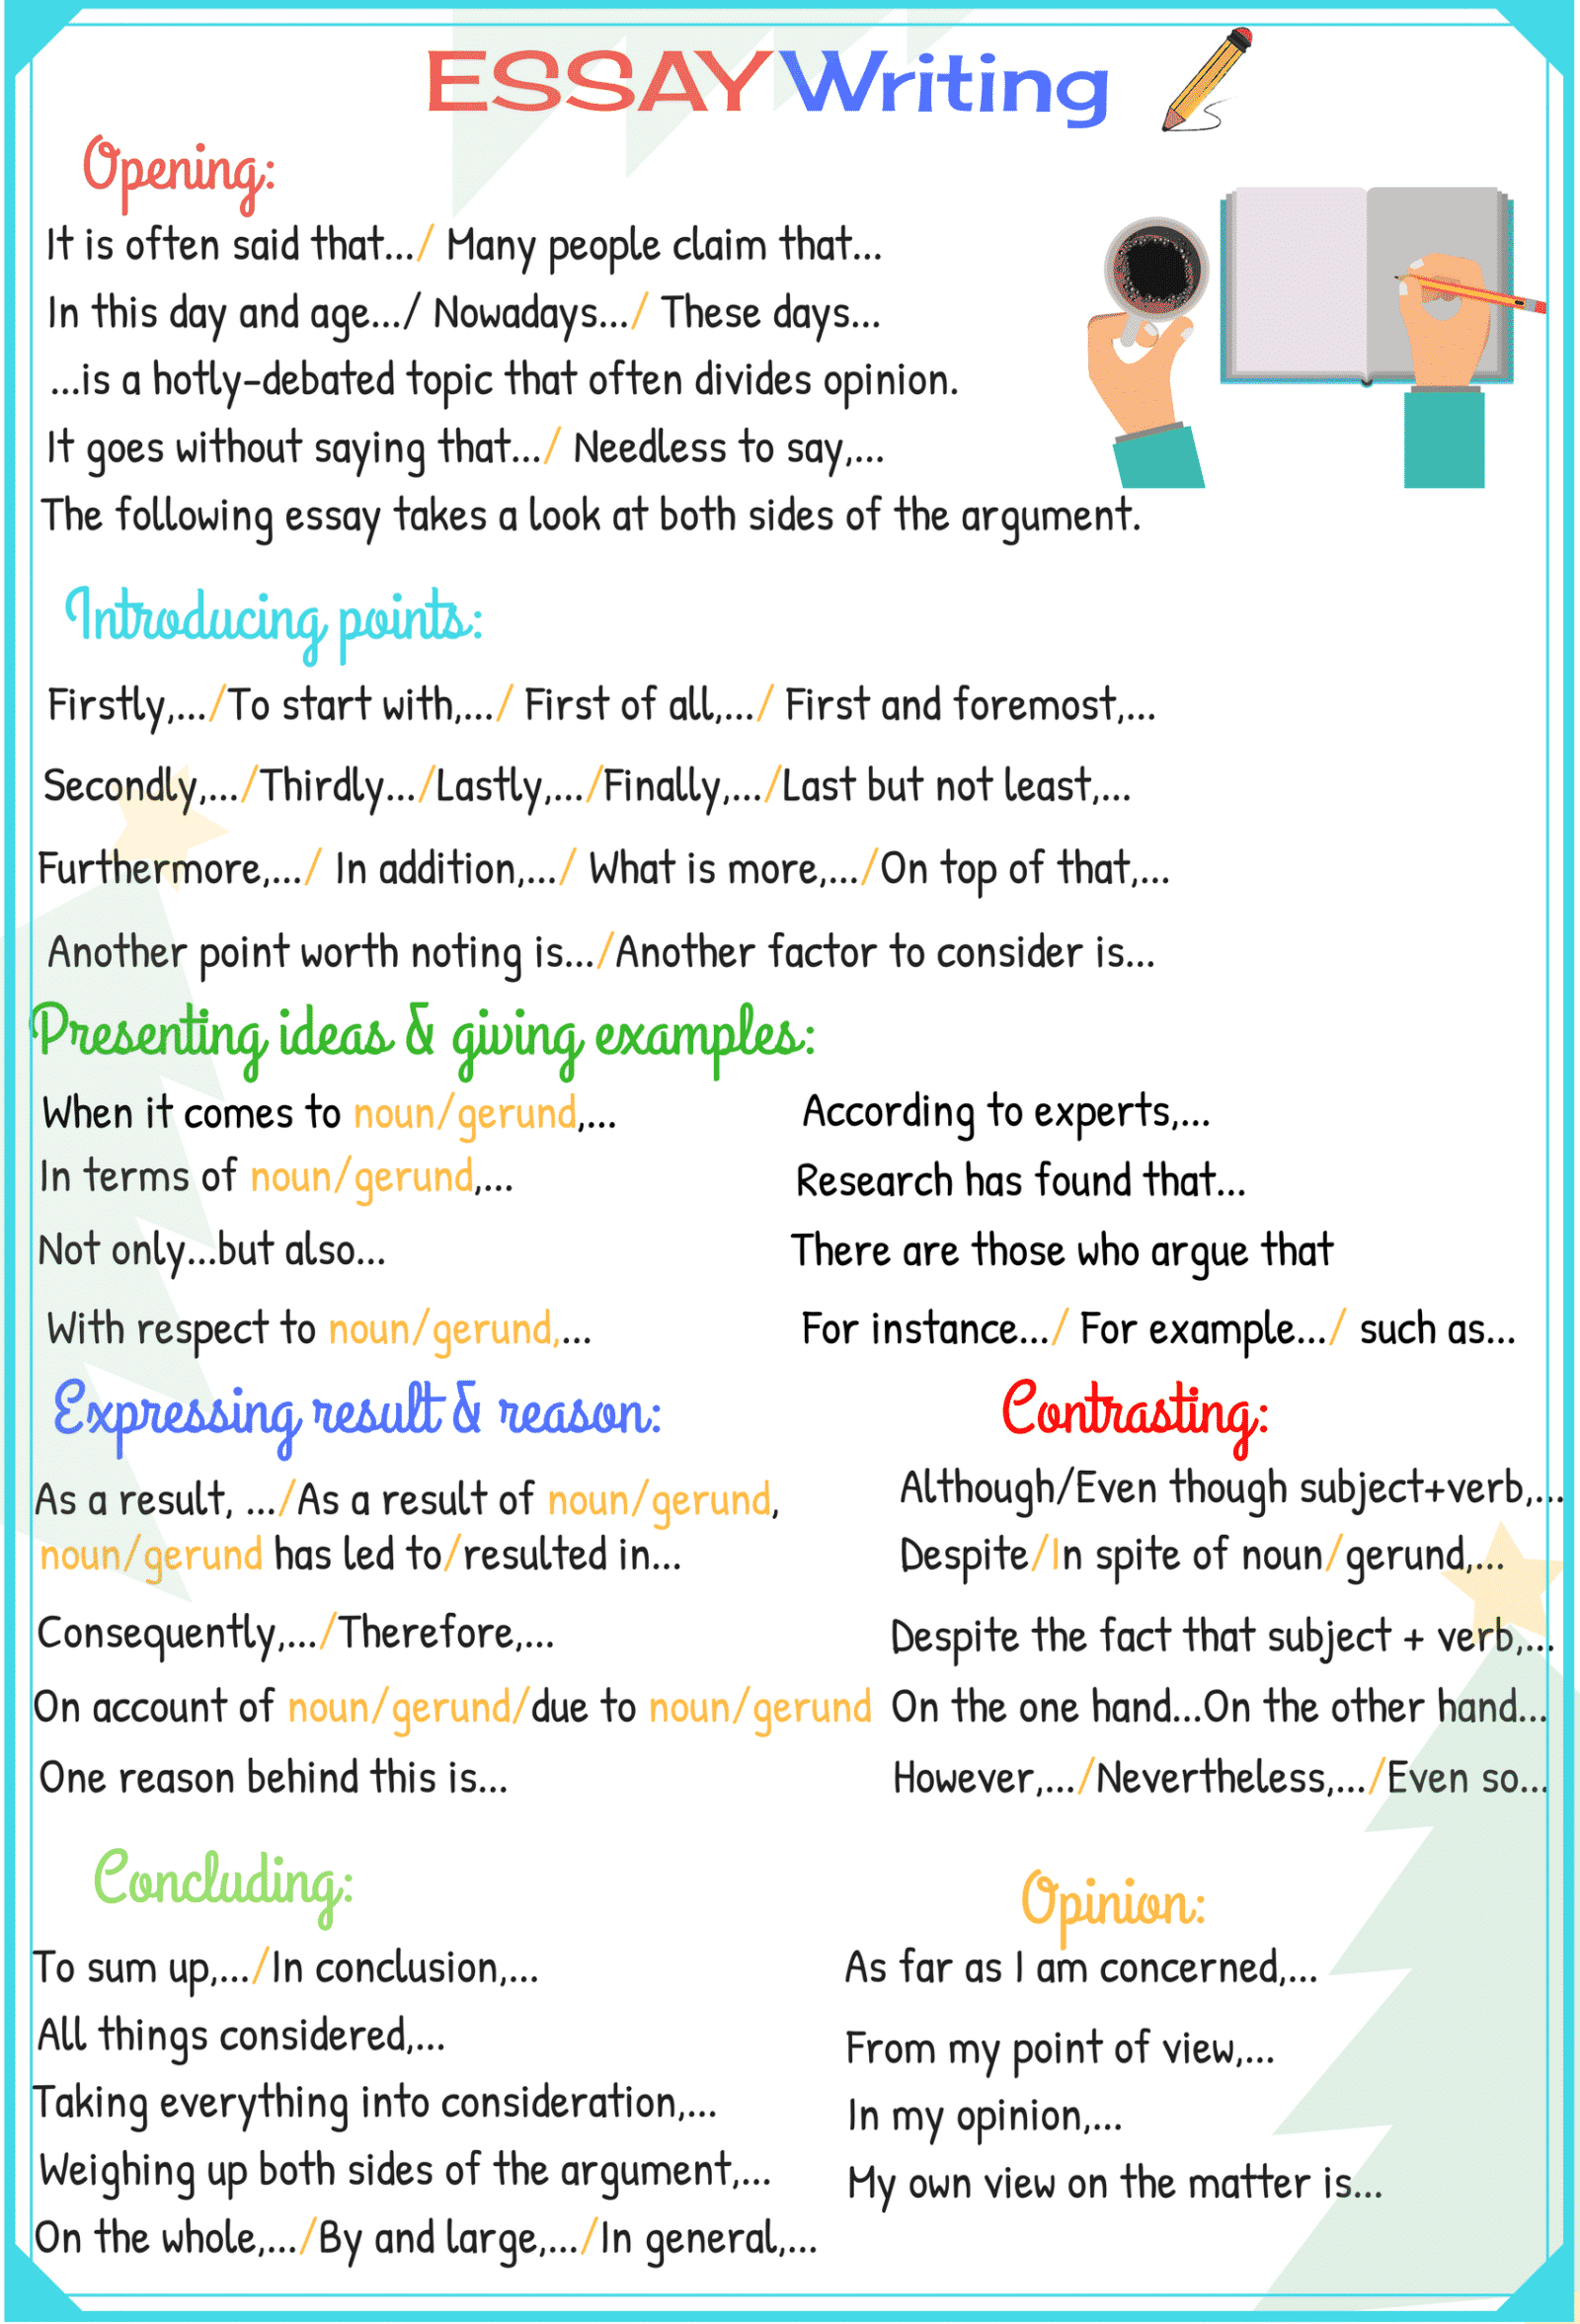 Steps to writing an essay for 6th graders